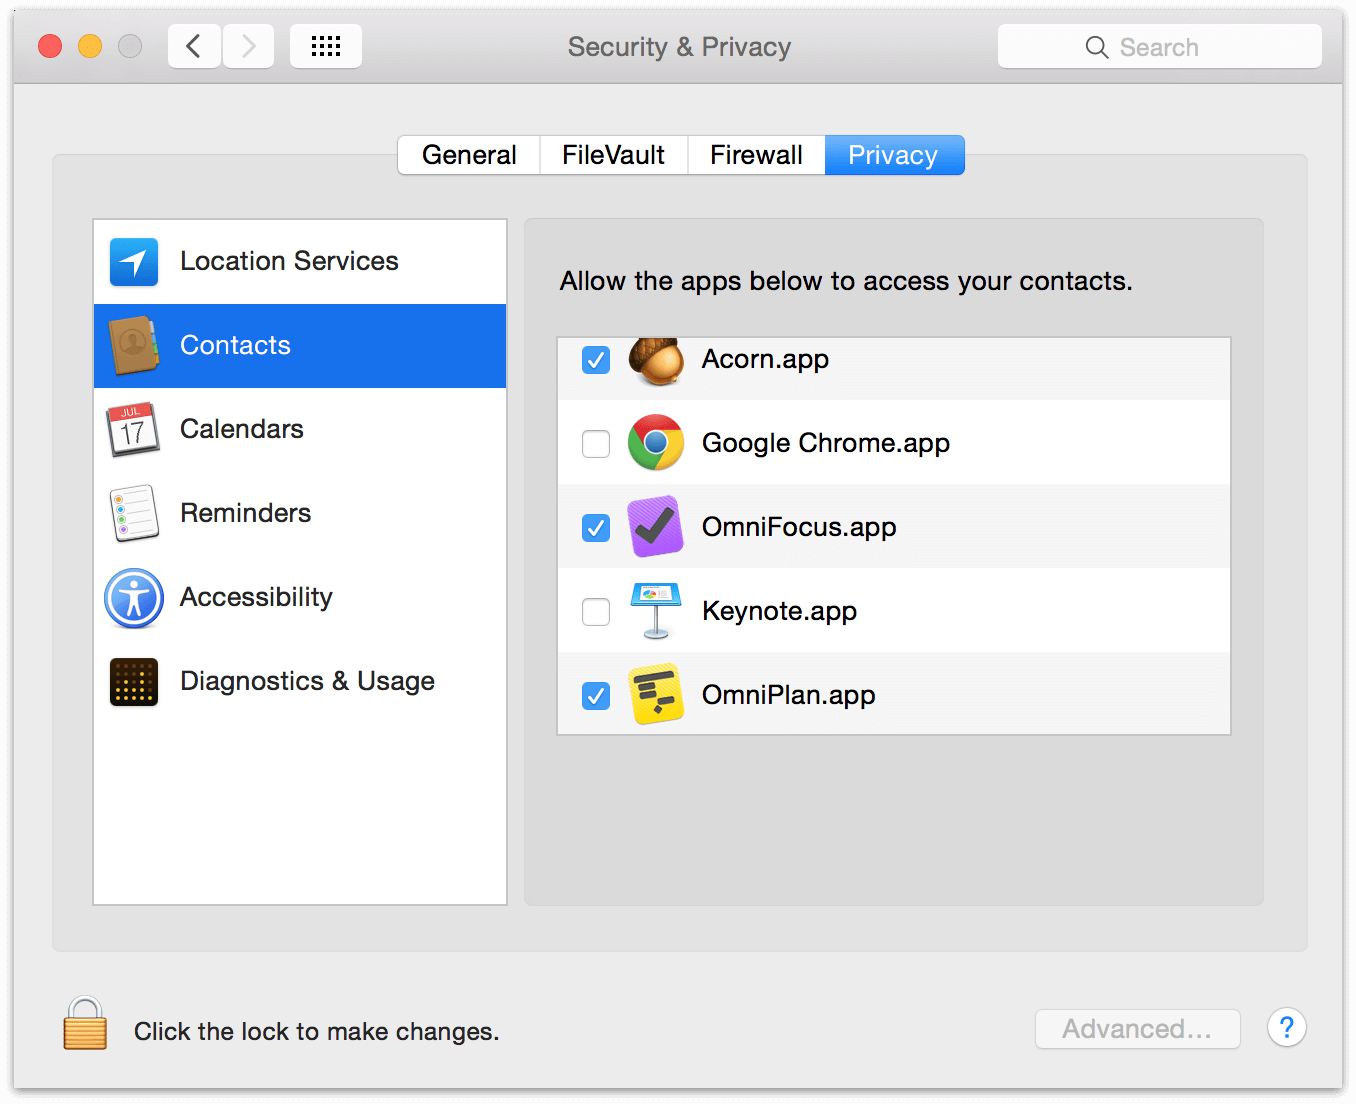 The Privacy tab of Security & Privacy in Apple's System Preferences.